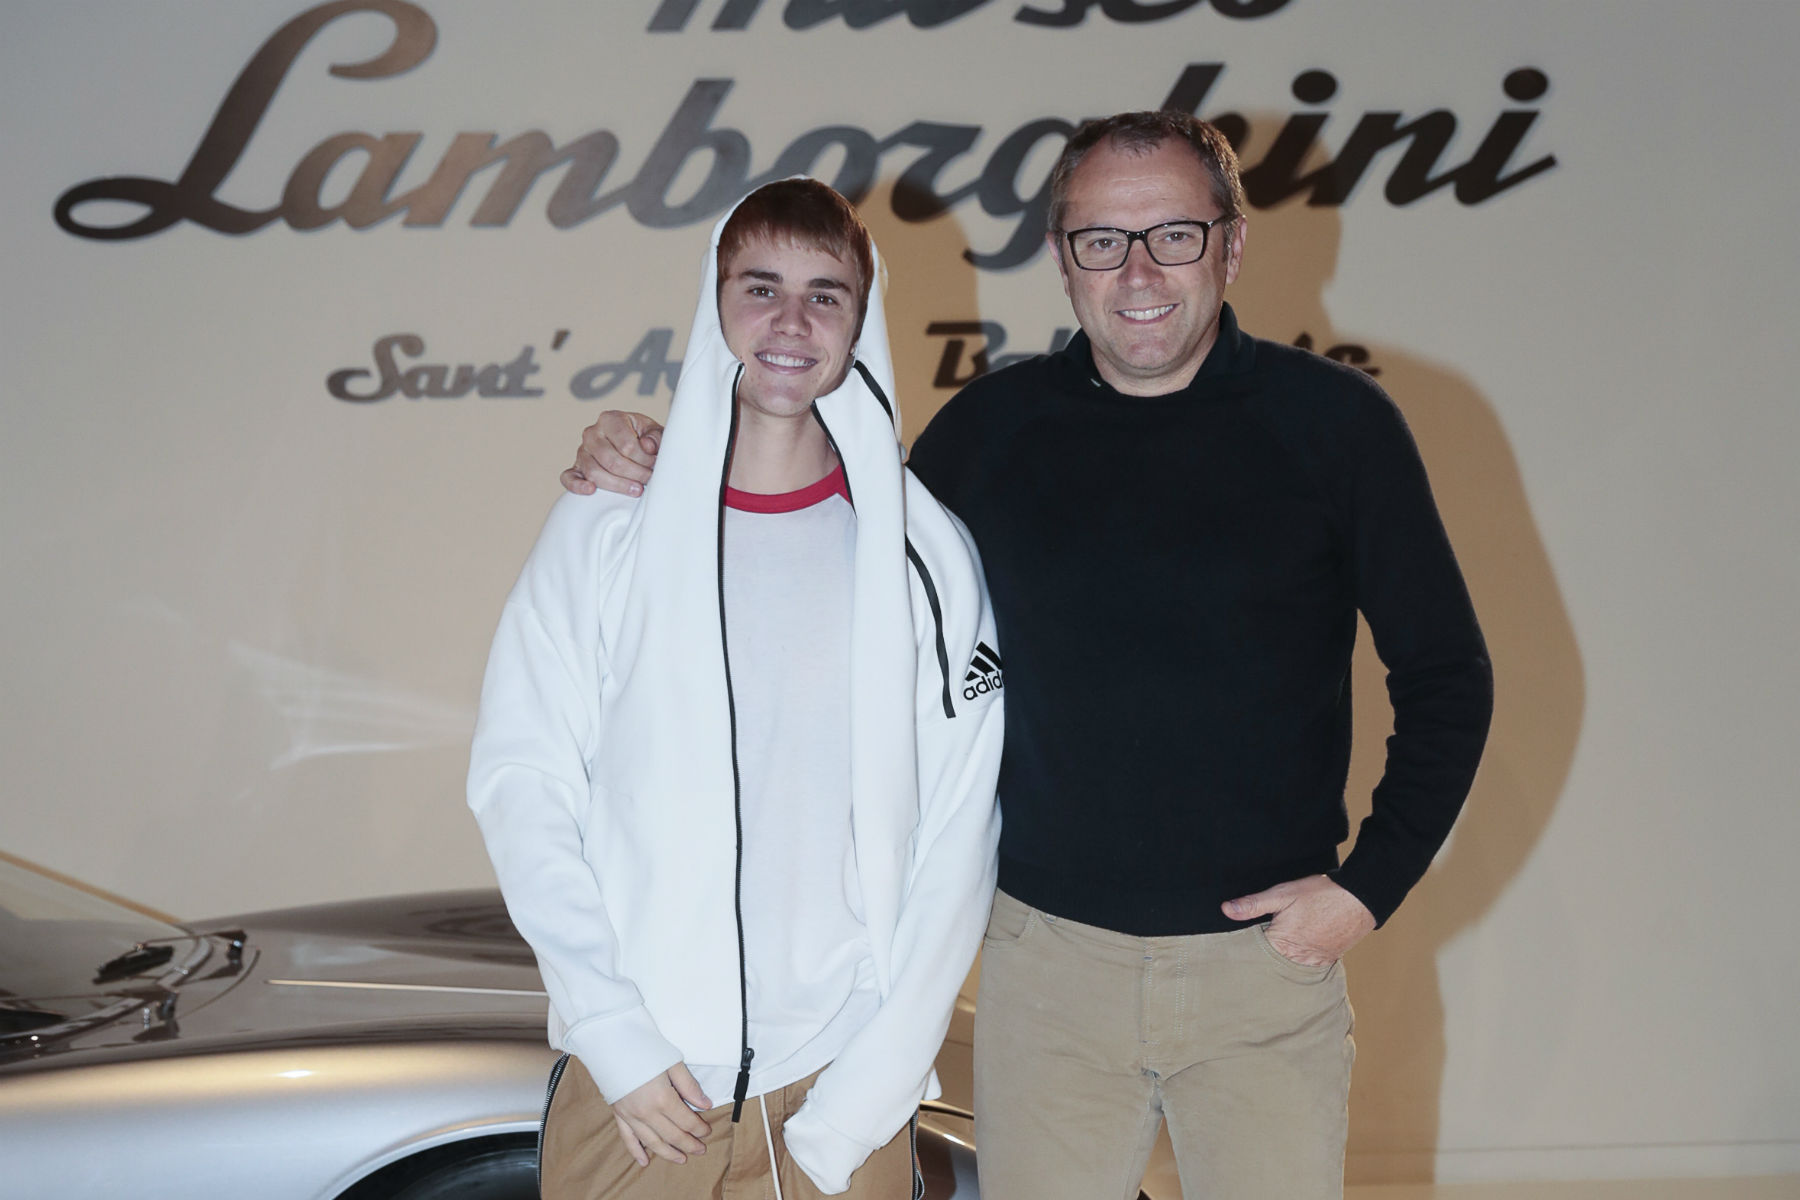 Justin Bieber has met Lamborghini's CEO and driven an Aventador Roadster